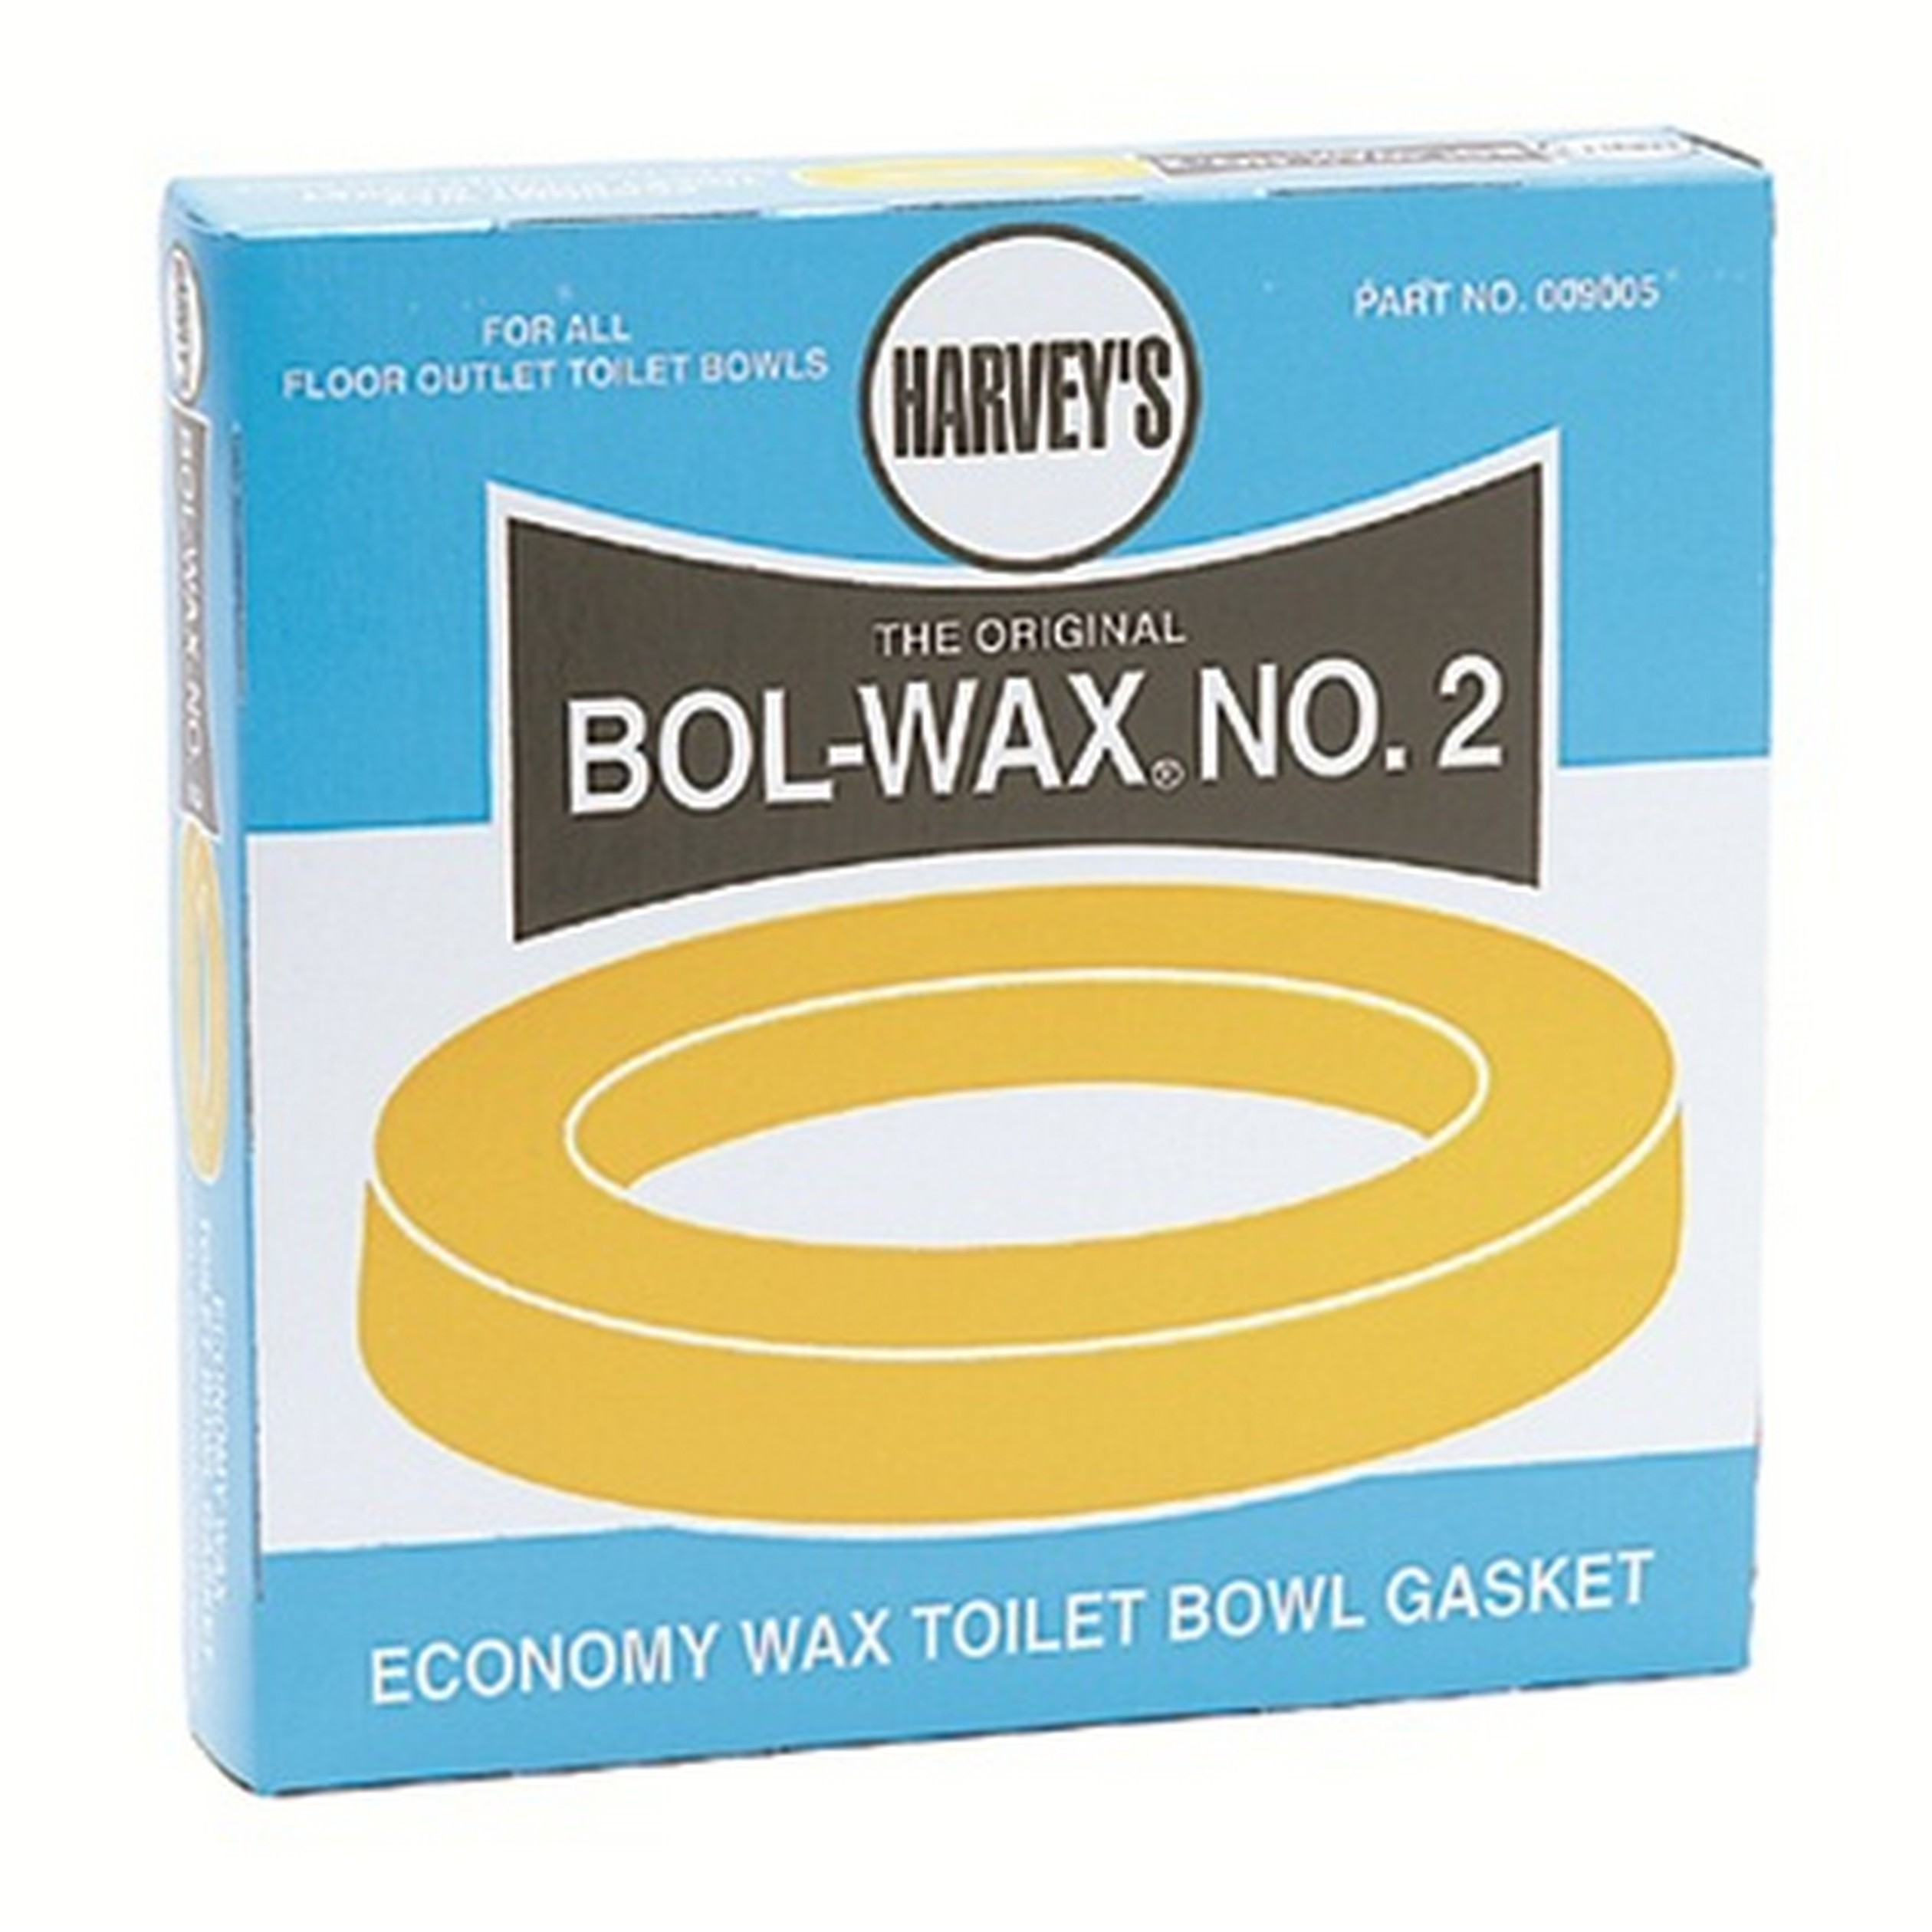 William H. Harvey 009005 Bol-Wax® No. 2 Economy Wax Gasket, For Use With Floor Outlet Toilet